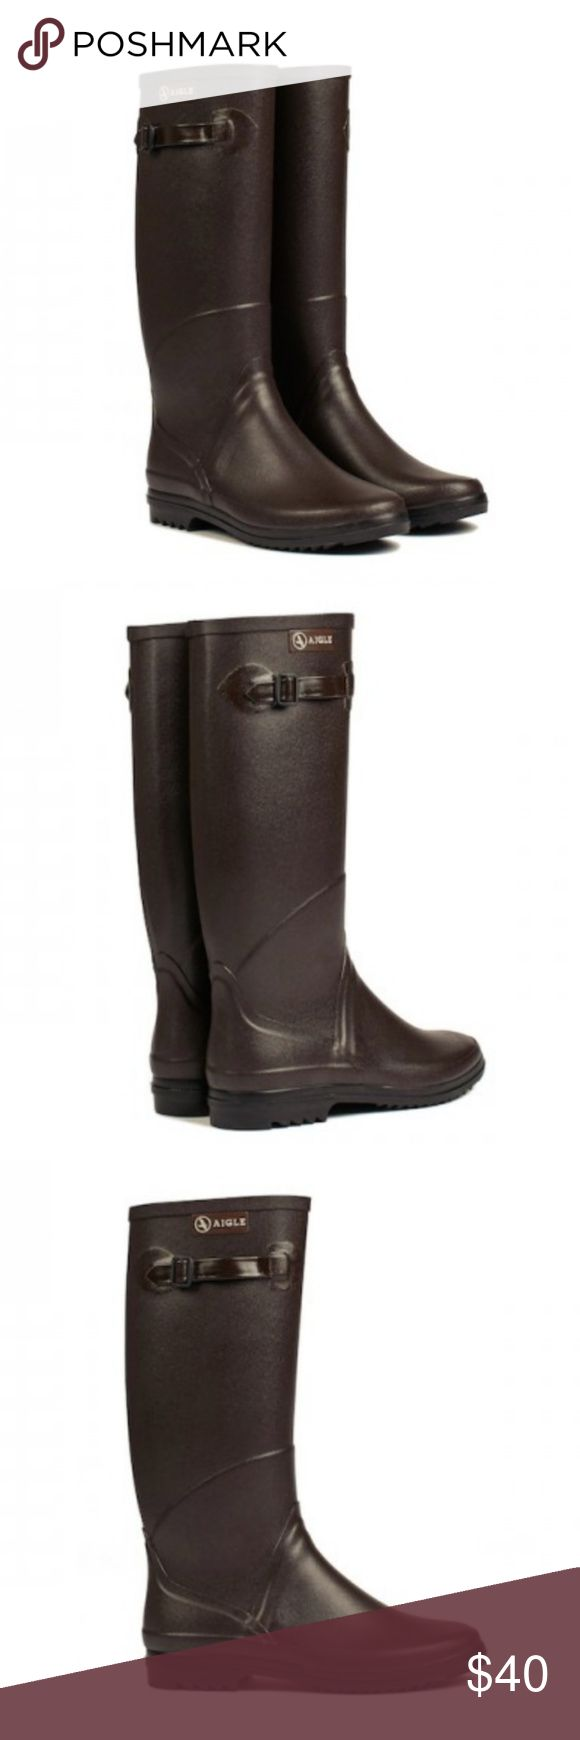 """🇫🇷Aigle CHANTEBELLE Hunting Rubber Boots GUC! """"The authentic hunting/rain boot for women. Diverted from their initial use, today they are worn both in the city and for a hunting trip. Elegant but also durable for years, they have nothing left to prove.This rubber boot is handmade in France by our master rubber craftsmen. Style: classical, for city wear as well as for a hunting trip. Handmade in France by our master rubber craftsmen."""" The side has some scuff marks, which is not noticeable…"""